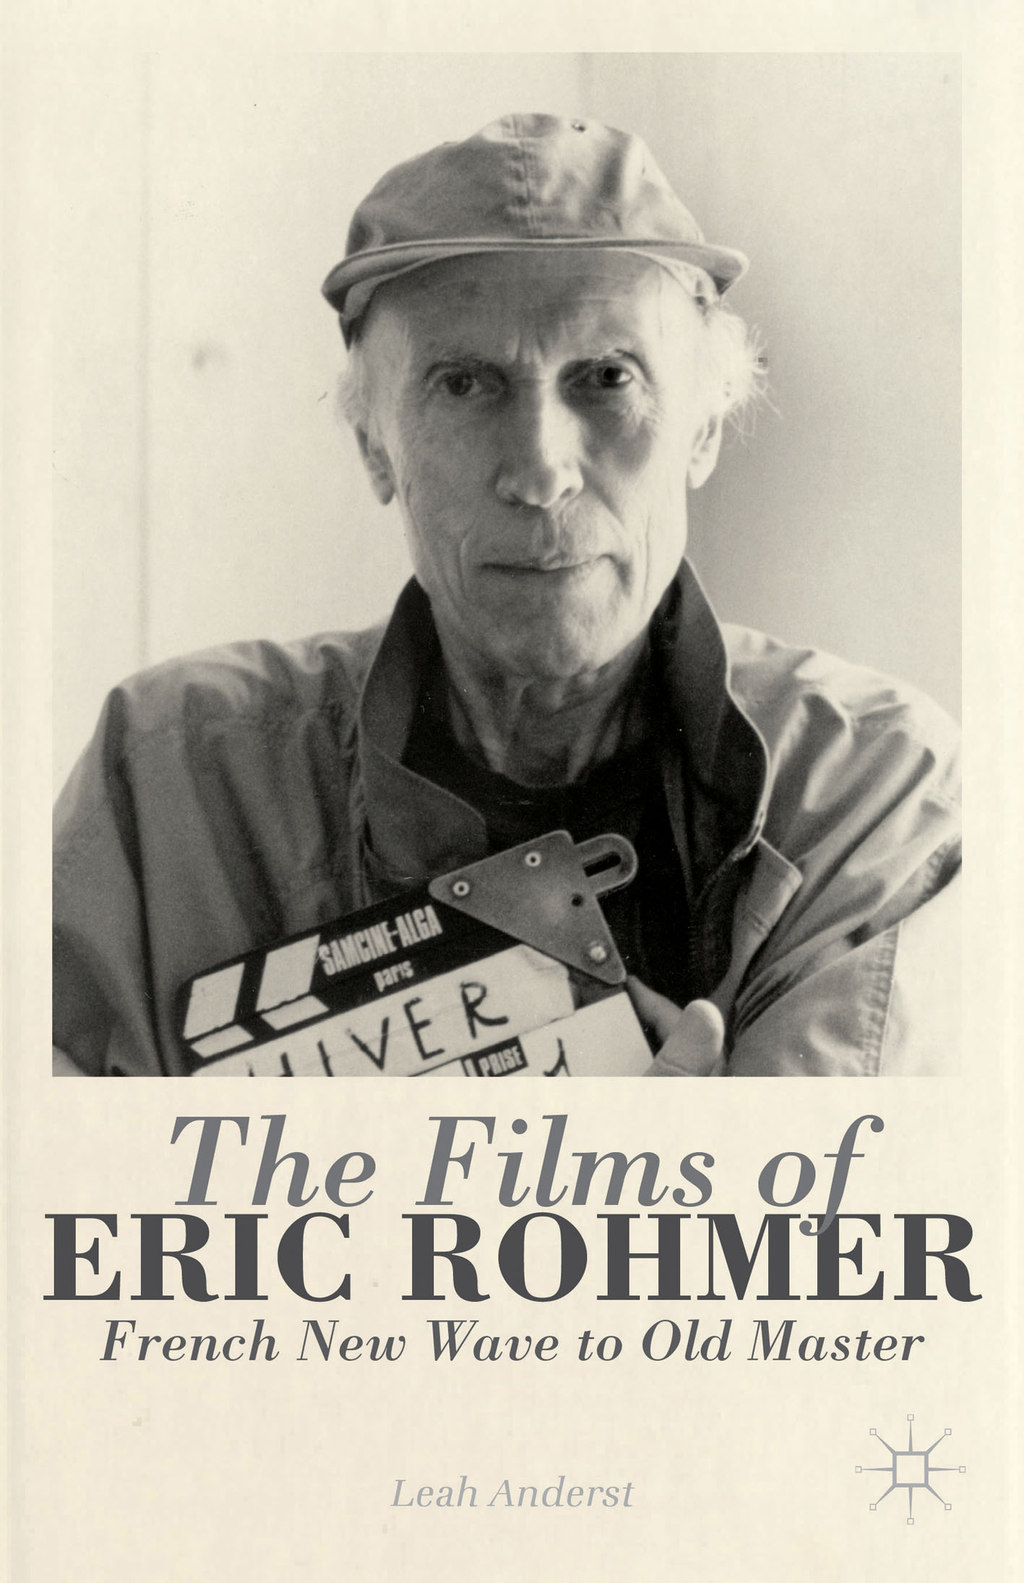 The Films of Eric Rohmer French New Wave to Old Master